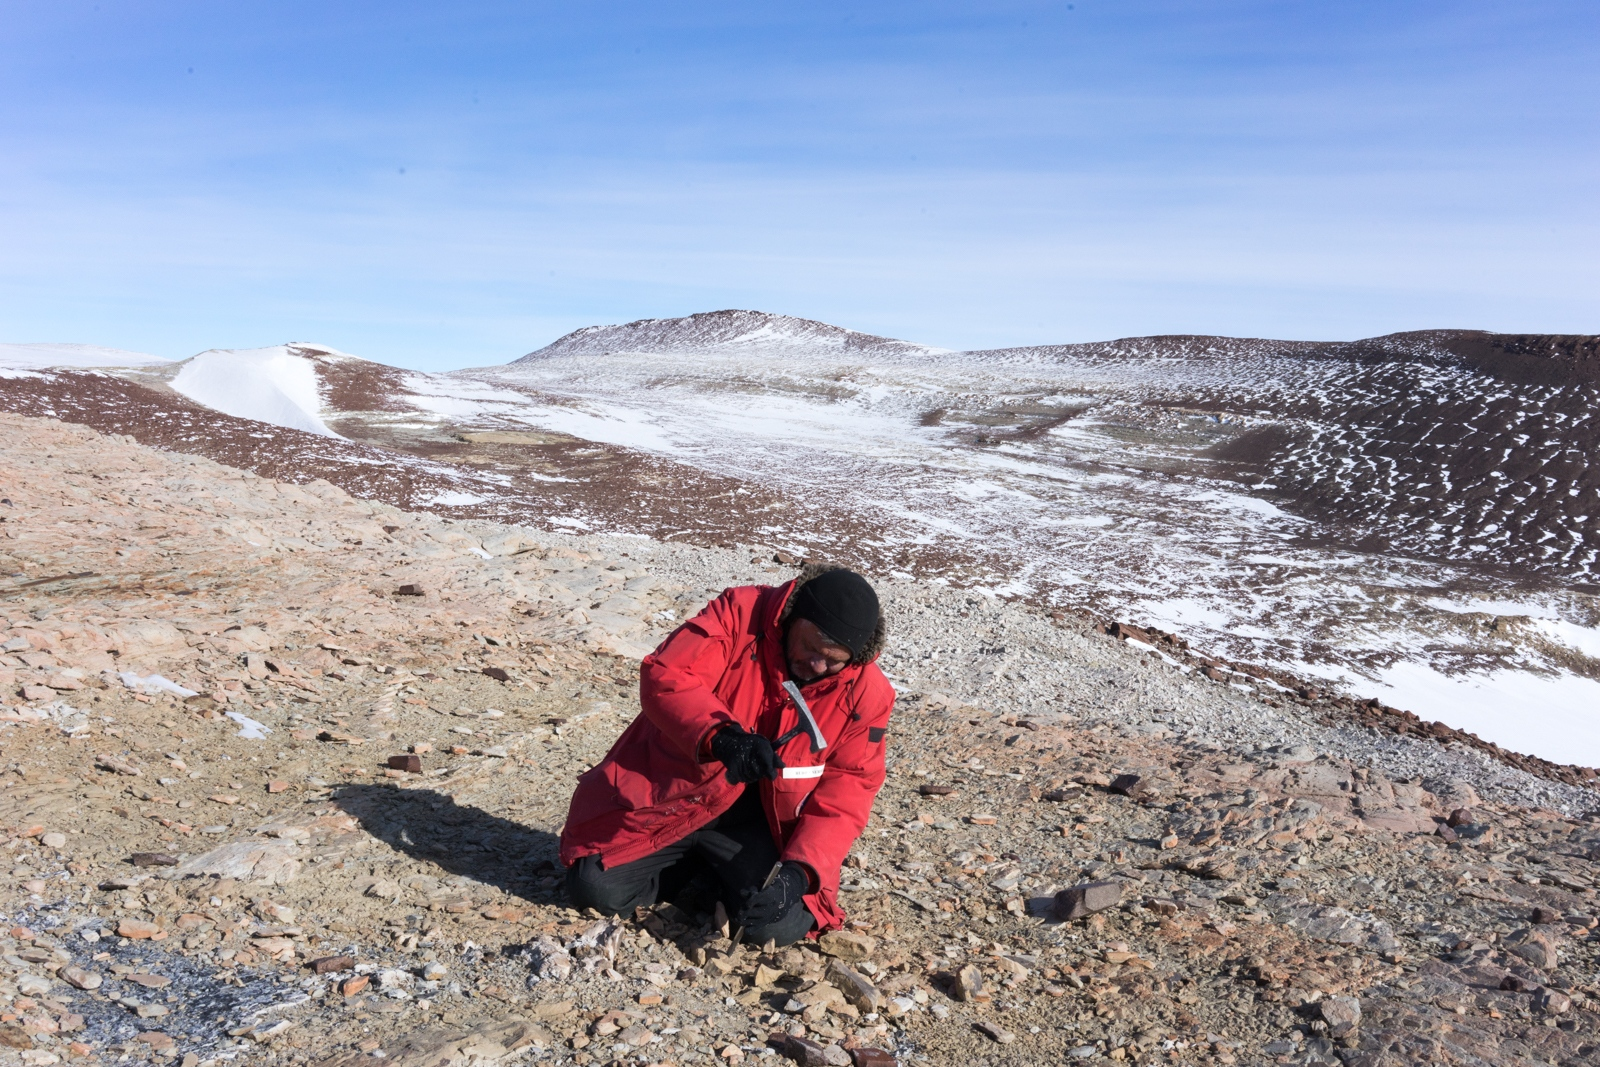 Unearthing plant leaf fossils, Dr. Serbet uses his hammer and pick to get into a deeper layer of rock. In a place known as Alfies Elbow, at over 10,000 feet, the wind rips hard down from the Antarctic plateau. 14 December 2017.